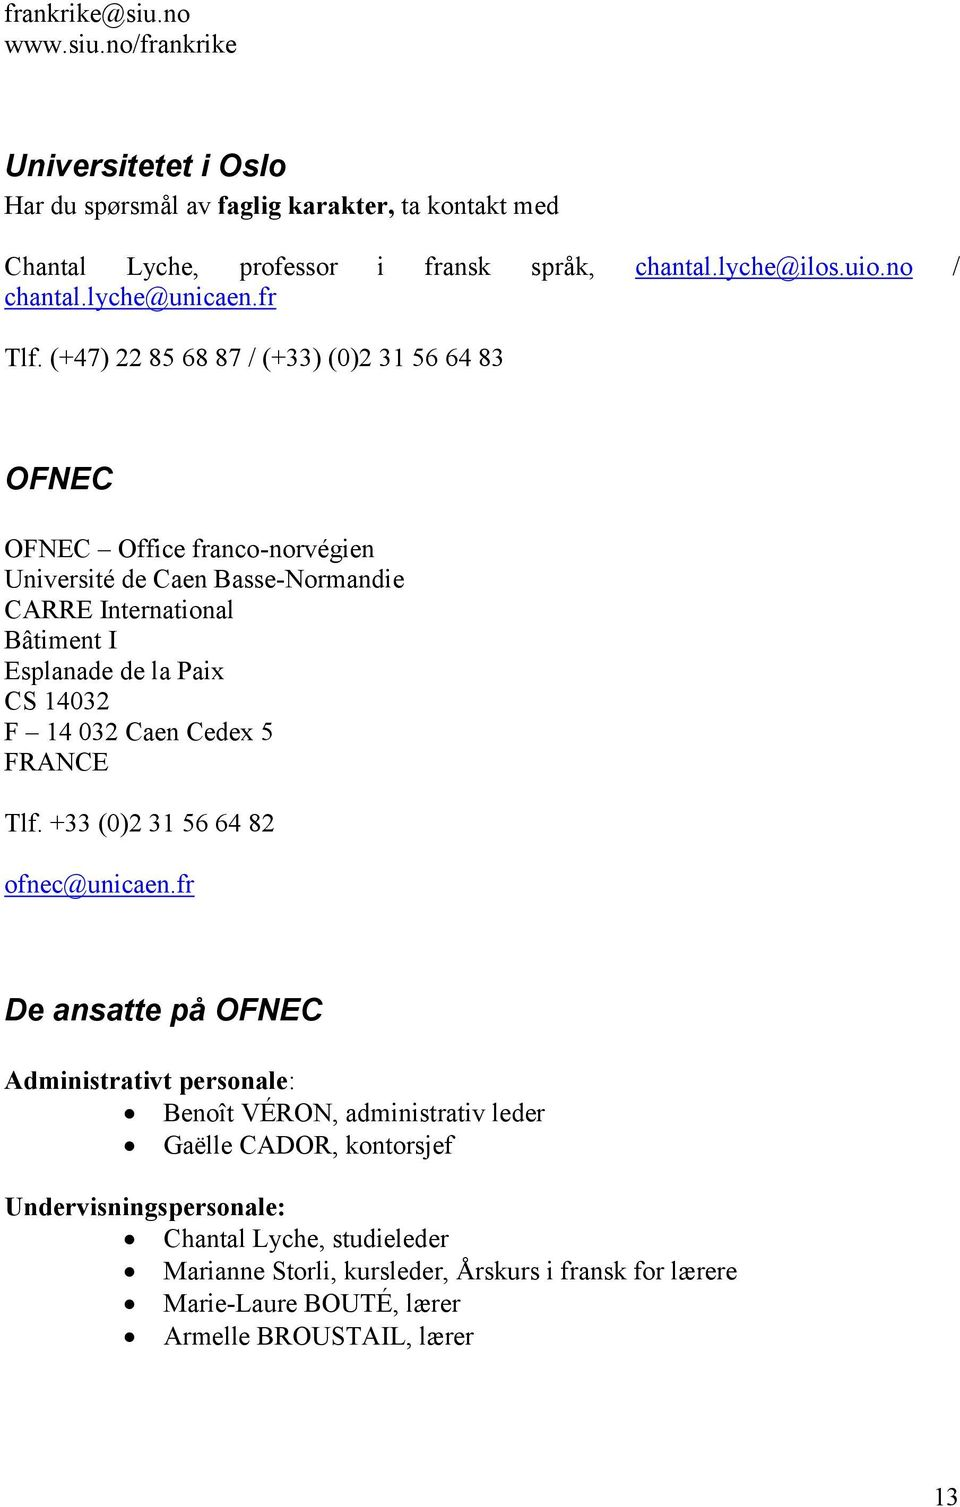 (+47) 22 85 68 87 / (+33) (0)2 31 56 64 83 OFNEC OFNEC Office franco-norvégien Université de Caen Basse-Normandie CARRE International Bâtiment I Esplanade de la Paix CS 14032 F 14